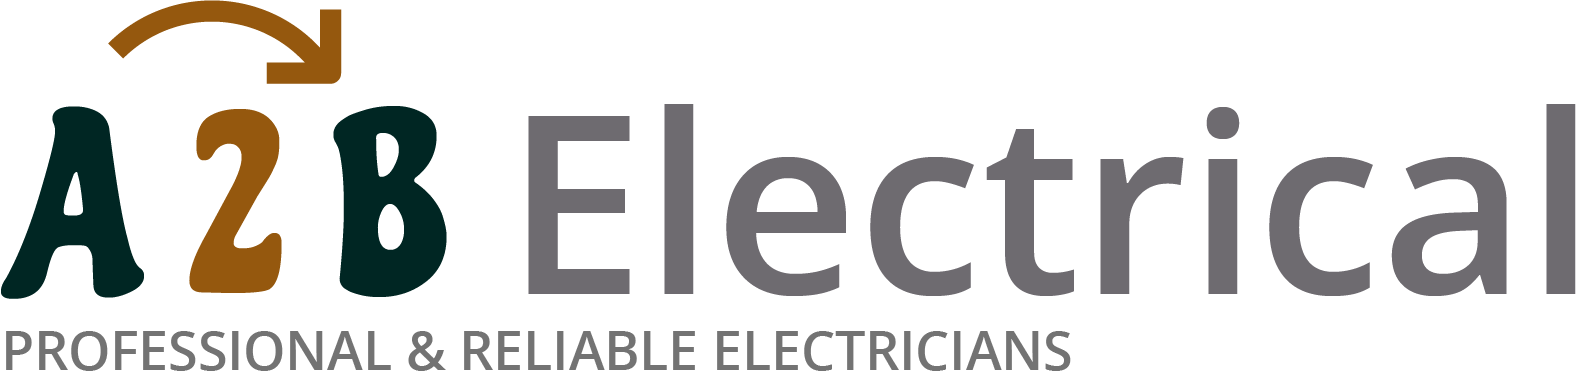 If you have electrical wiring problems in Fulham, we can provide an electrician to have a look for you.